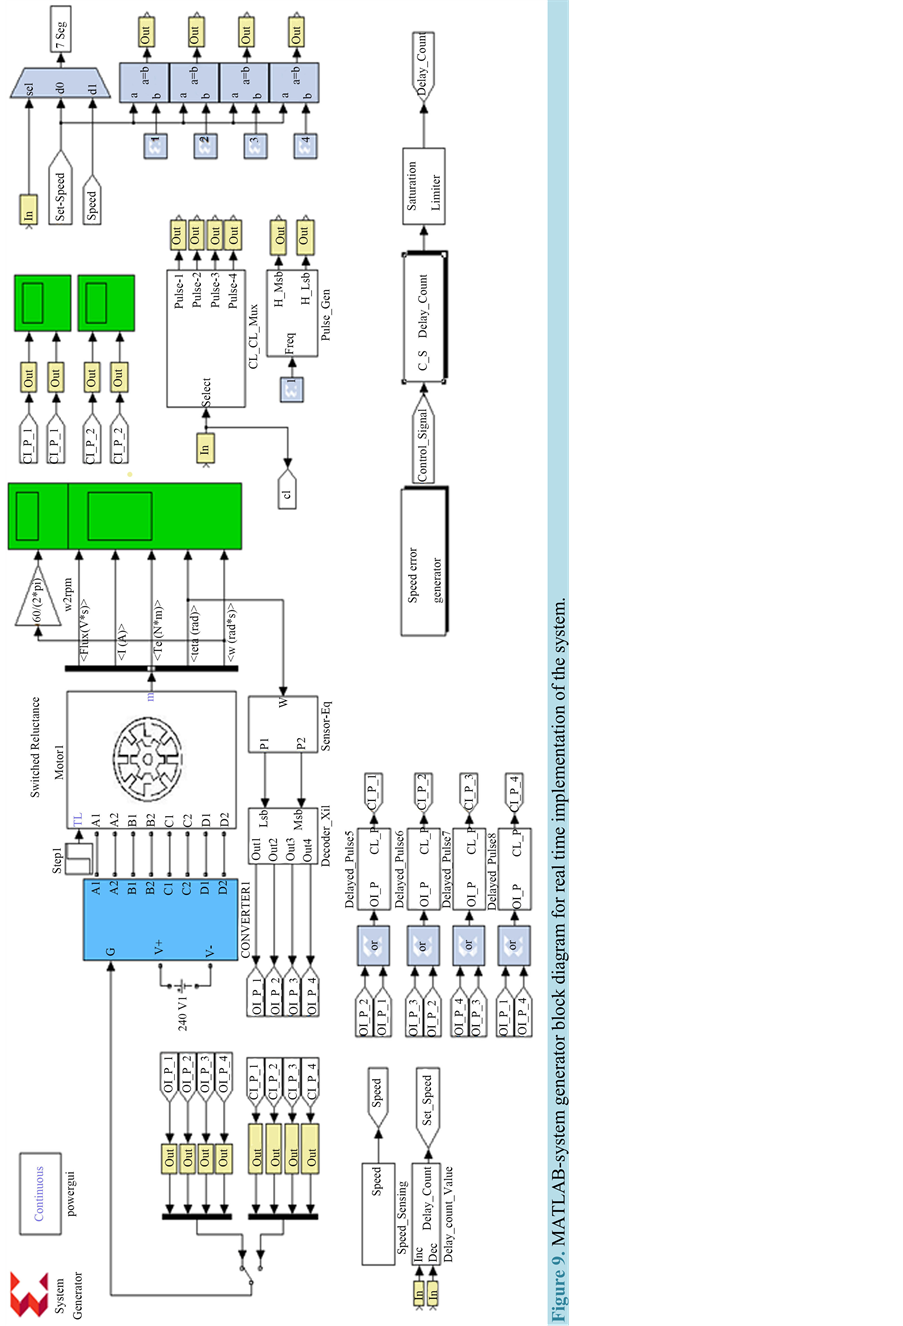 Fpga Based Speed Control Of Srm With Optimized Switching Angles By Complicated Circuit Gives Better Low And Higher Torque Figure 9matlab System Generator Block Diagram For Real Time Implementation The